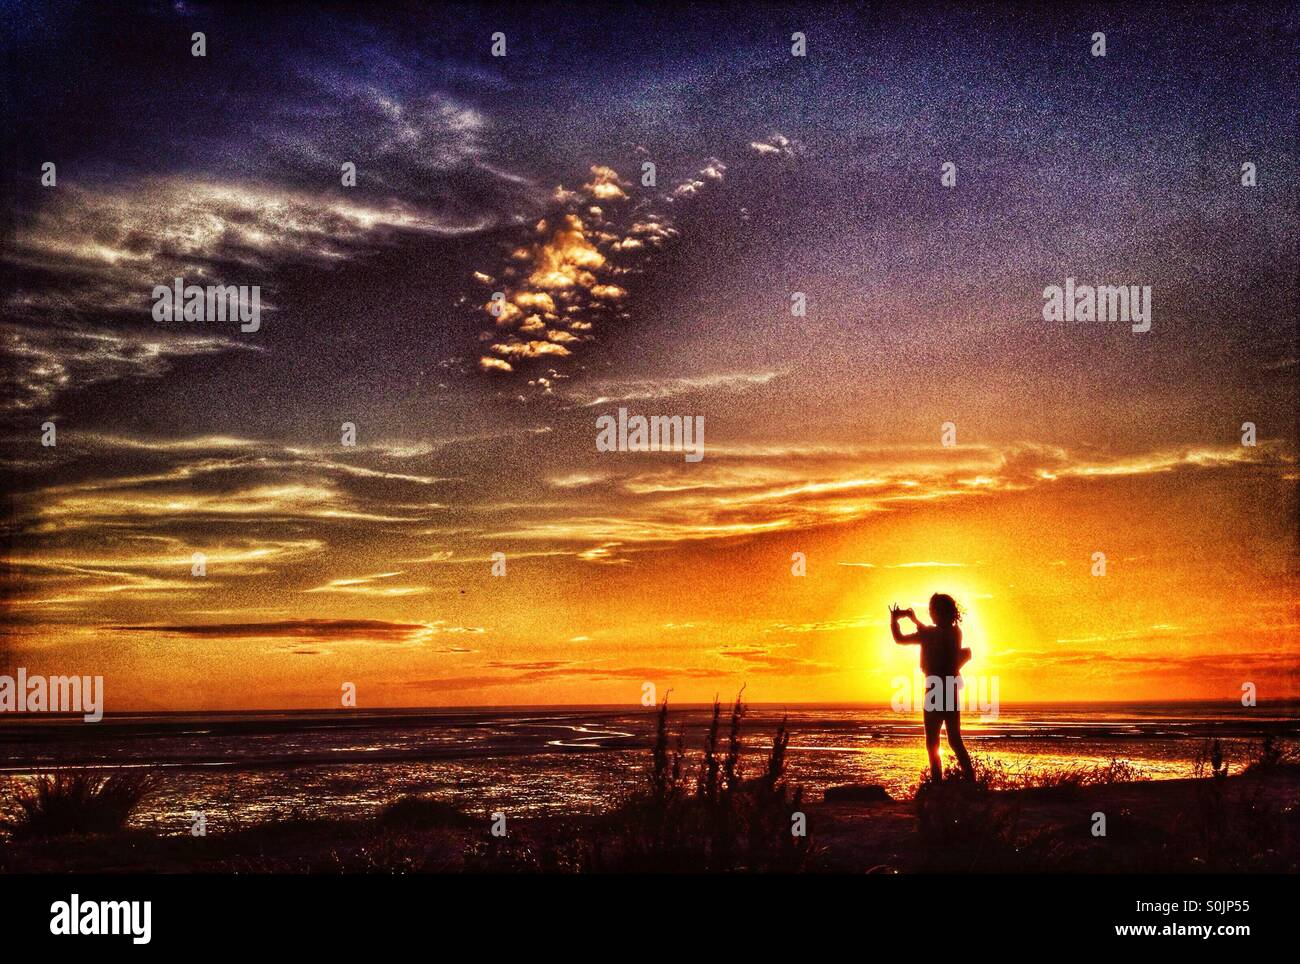 Young girl taking photo silhouetted against the setting sun over Morecambe Bay at Heysham - Stock Image